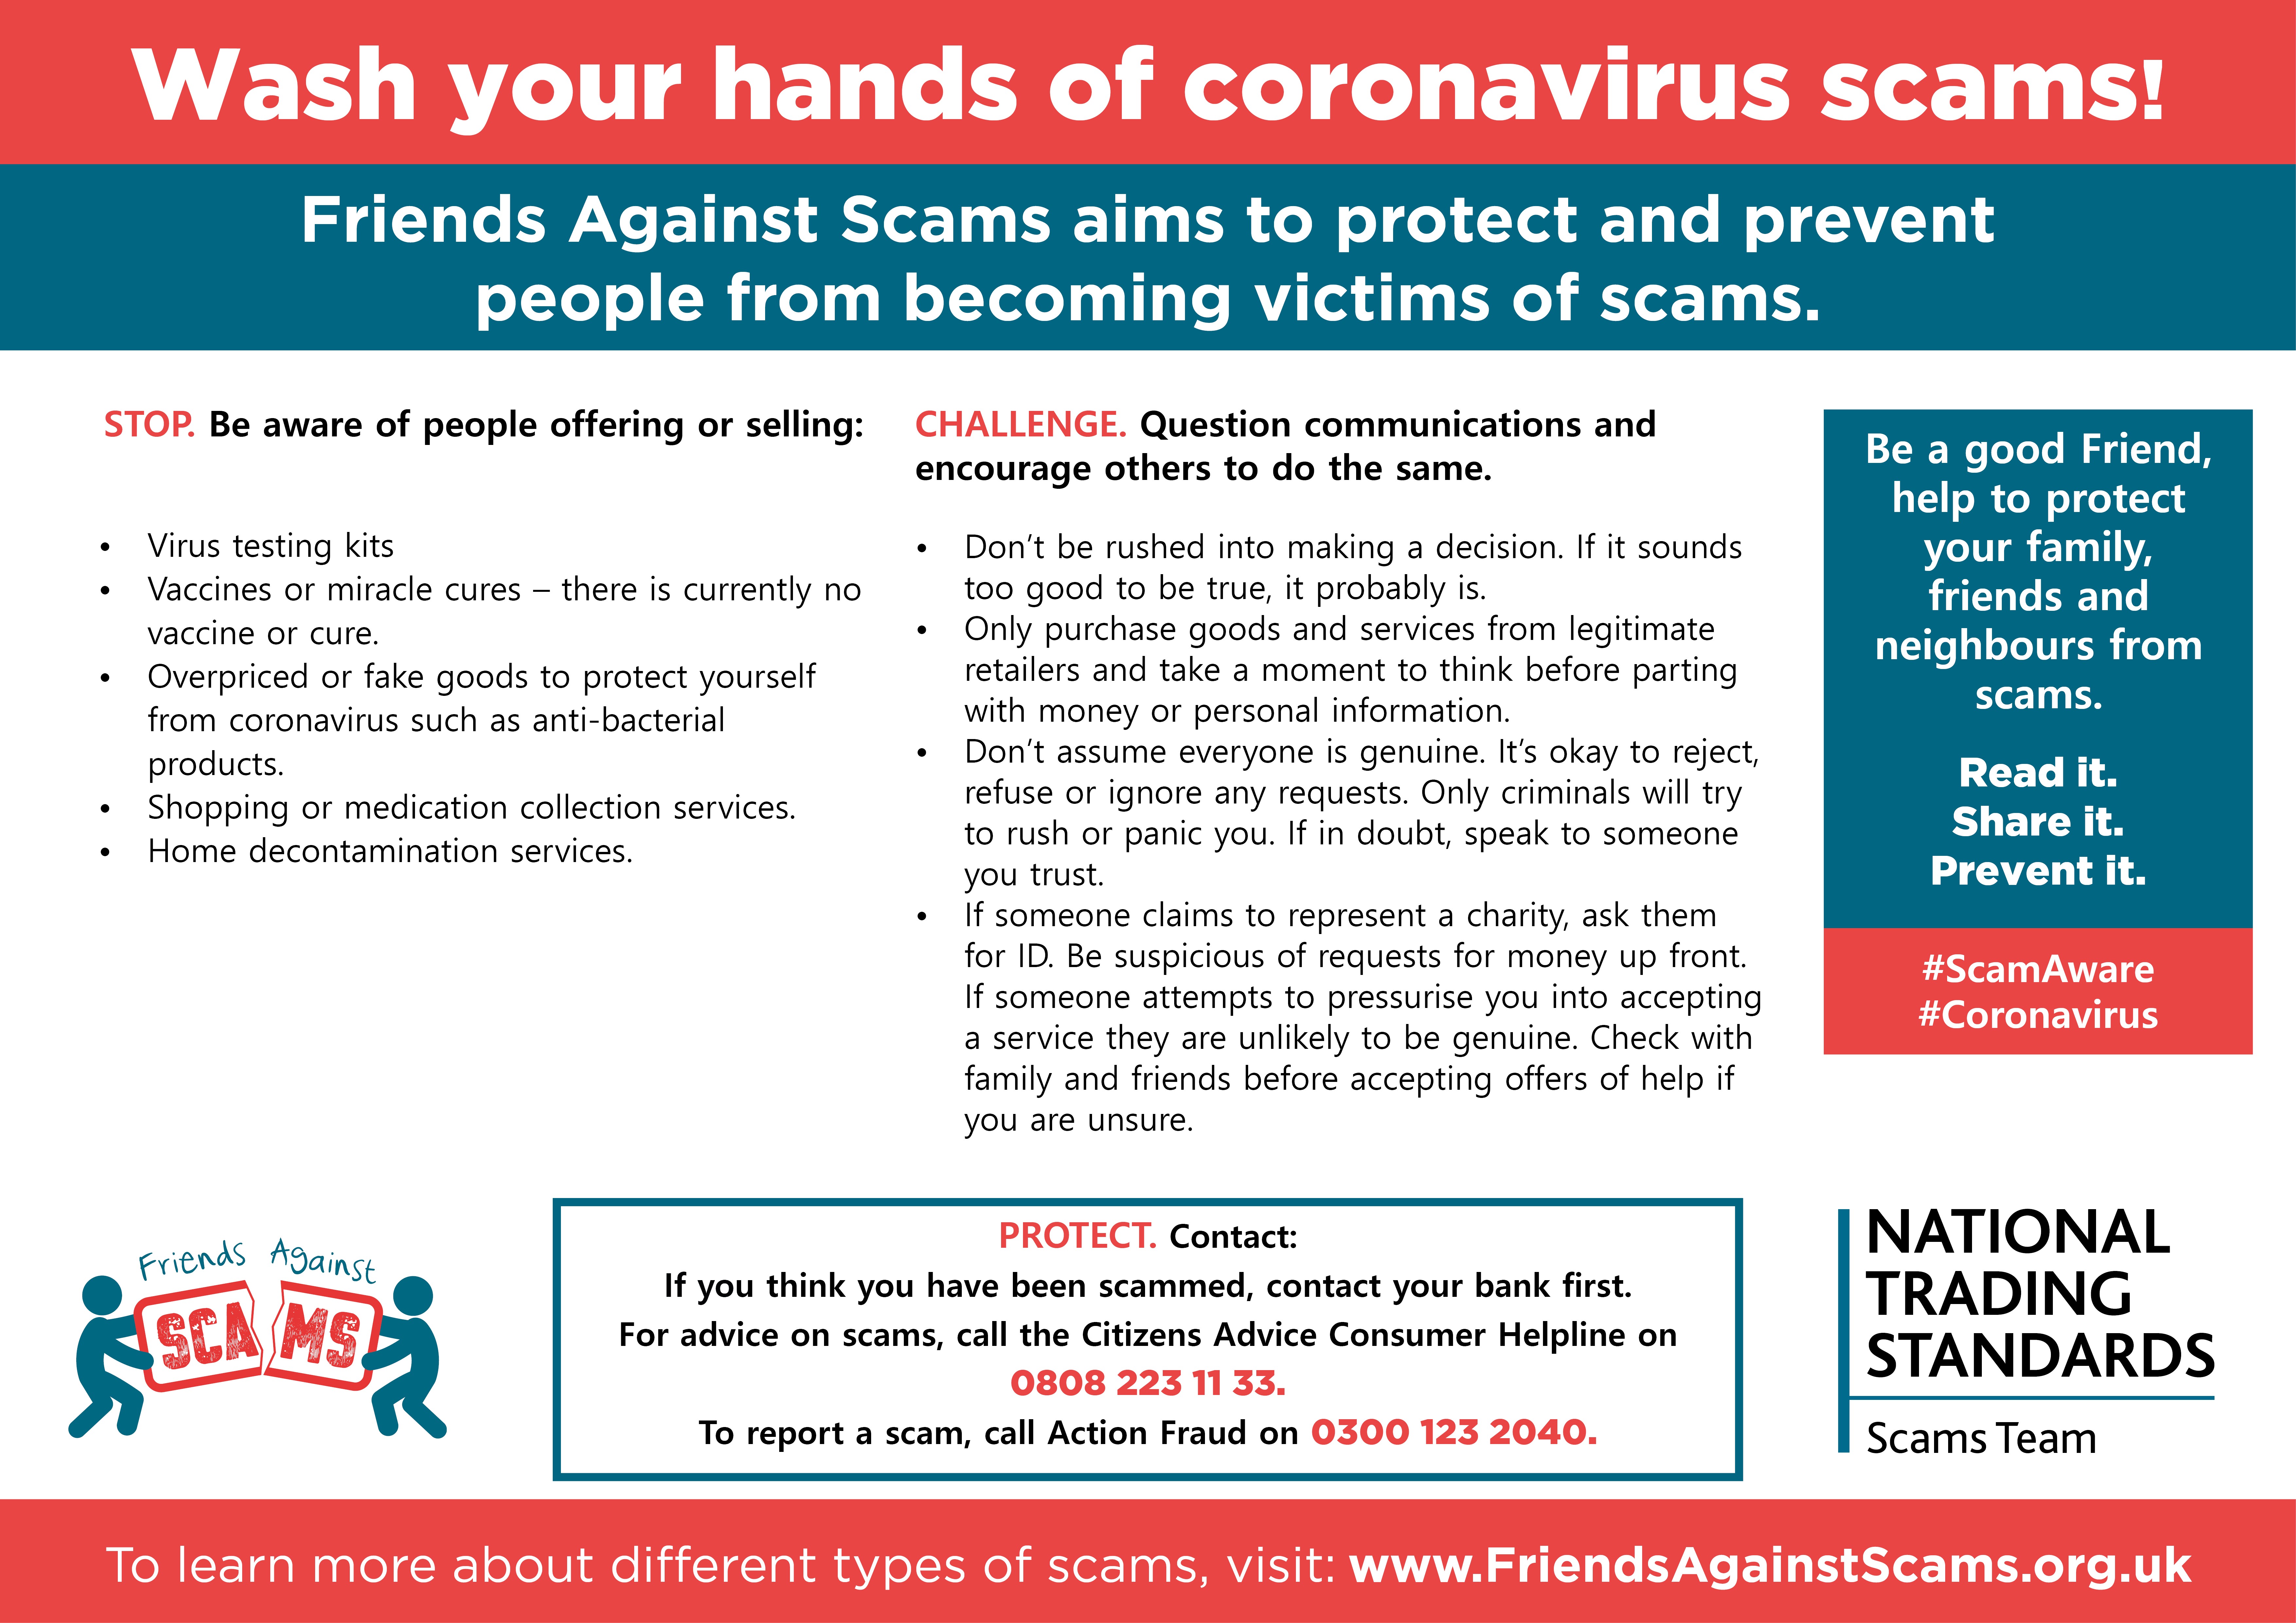 Friends Against Scams National Trading Standards Nts Scams Team Initiative Protecting And Preventing People From Becoming Victims Of Scams